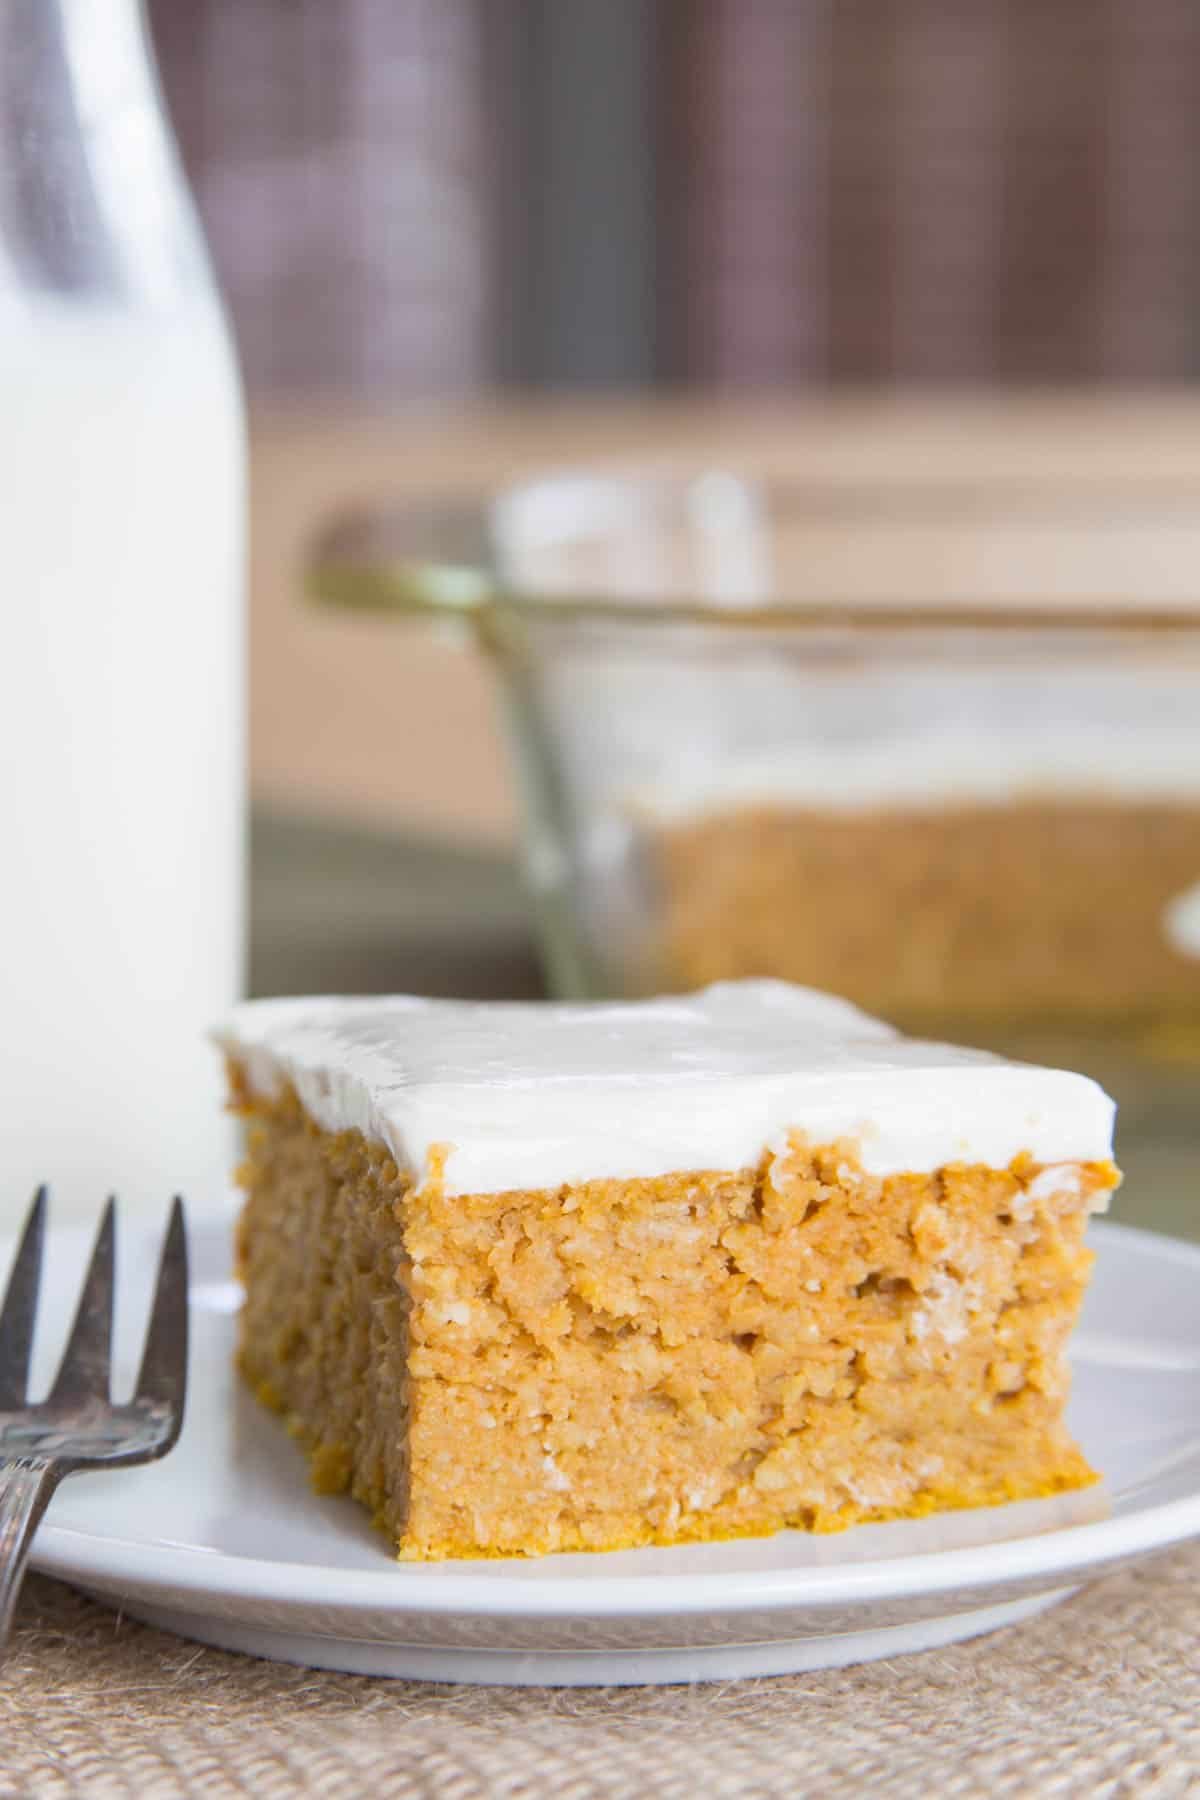 A square slice of baked pumpkin snack cake on a plate